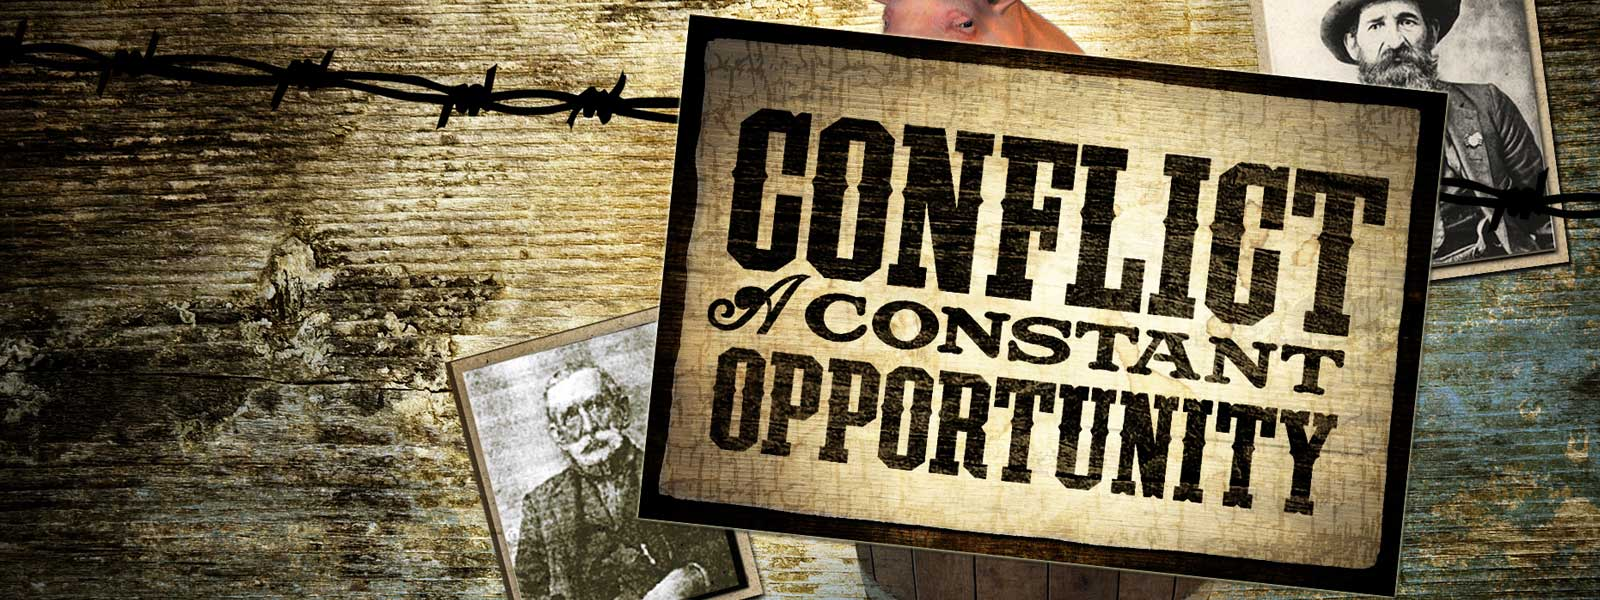 Conflict: A Constant Opportunity